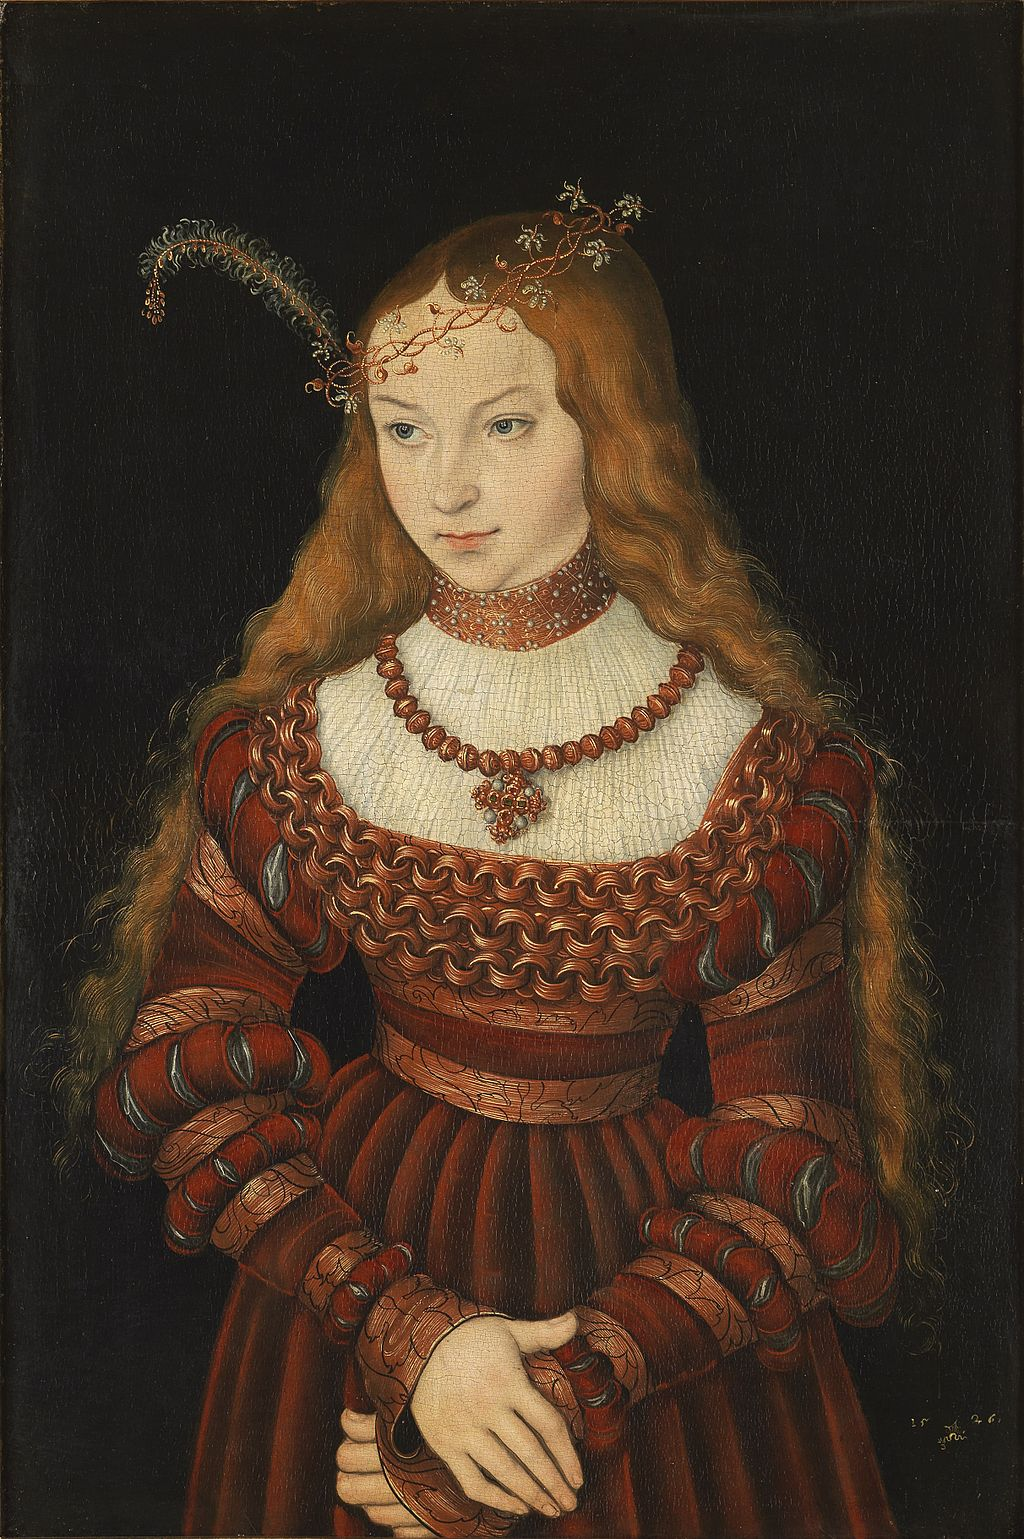 Lucas Cranach the Elder, Sibylle of Cleves at the time of her betrothal to Electoral Prince John Frederick, 1526